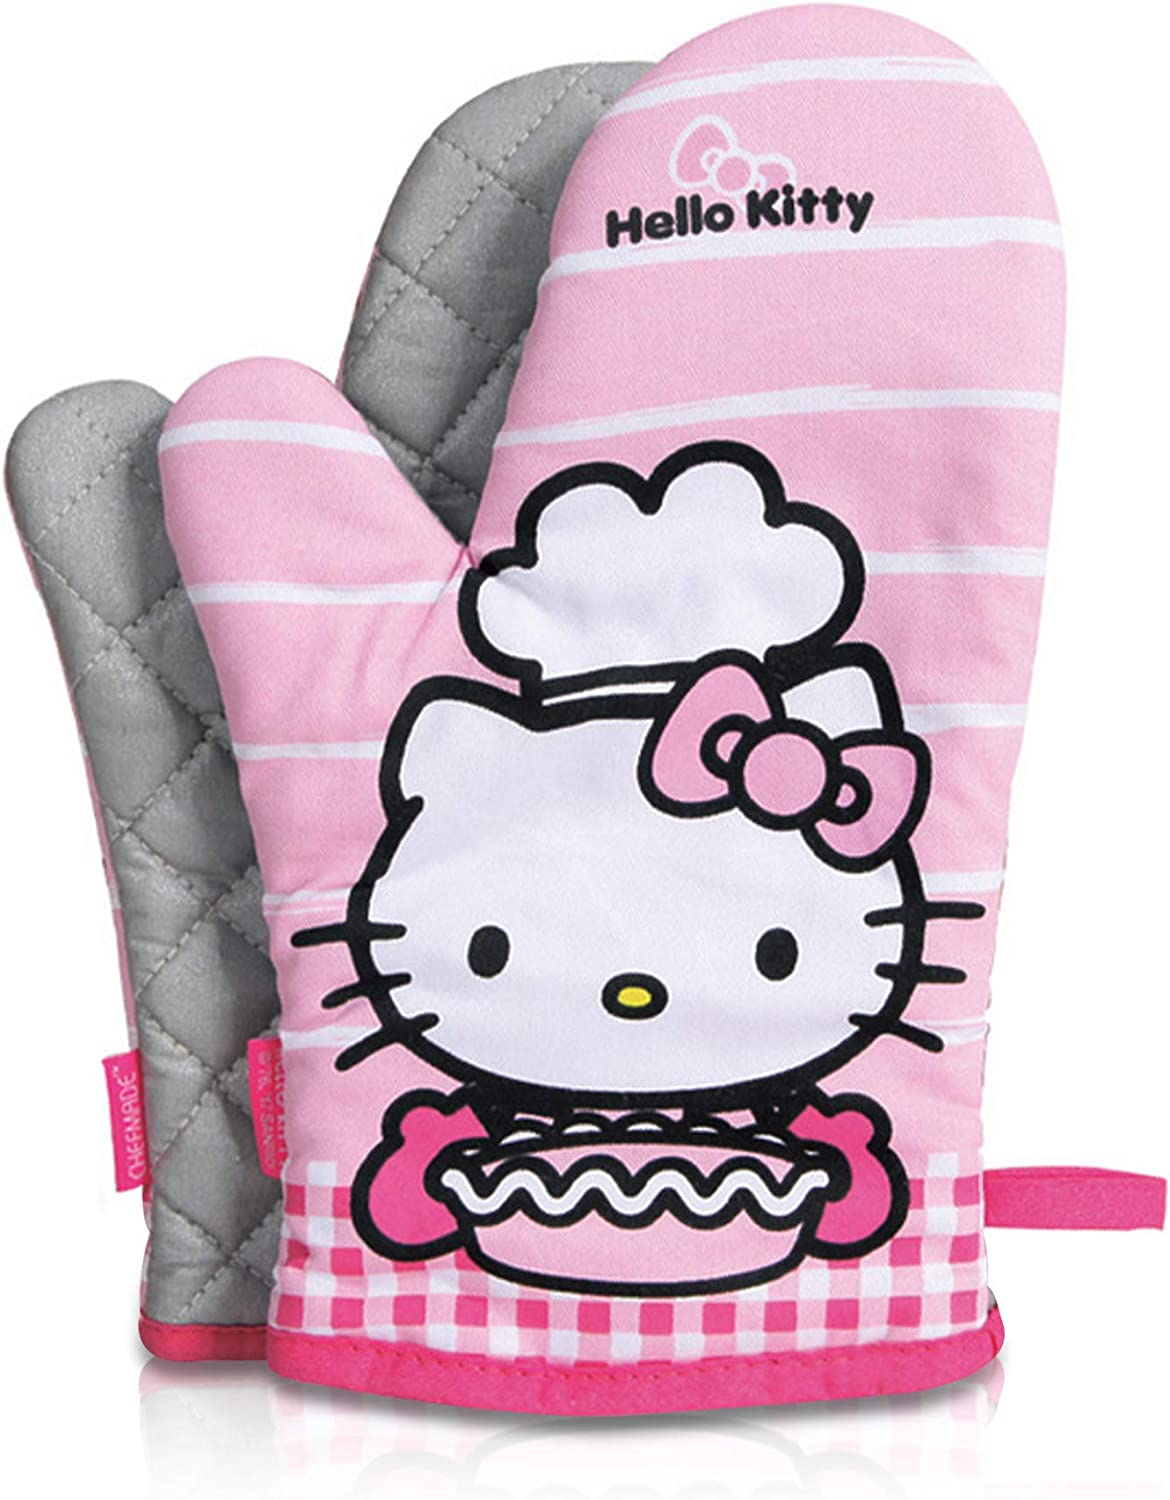 Finex Hello Kitty 2 Pcs Quilted Oven Mitt Set with Hanging Loop One Pair Mitts Machine Washable Kitchen Gloves